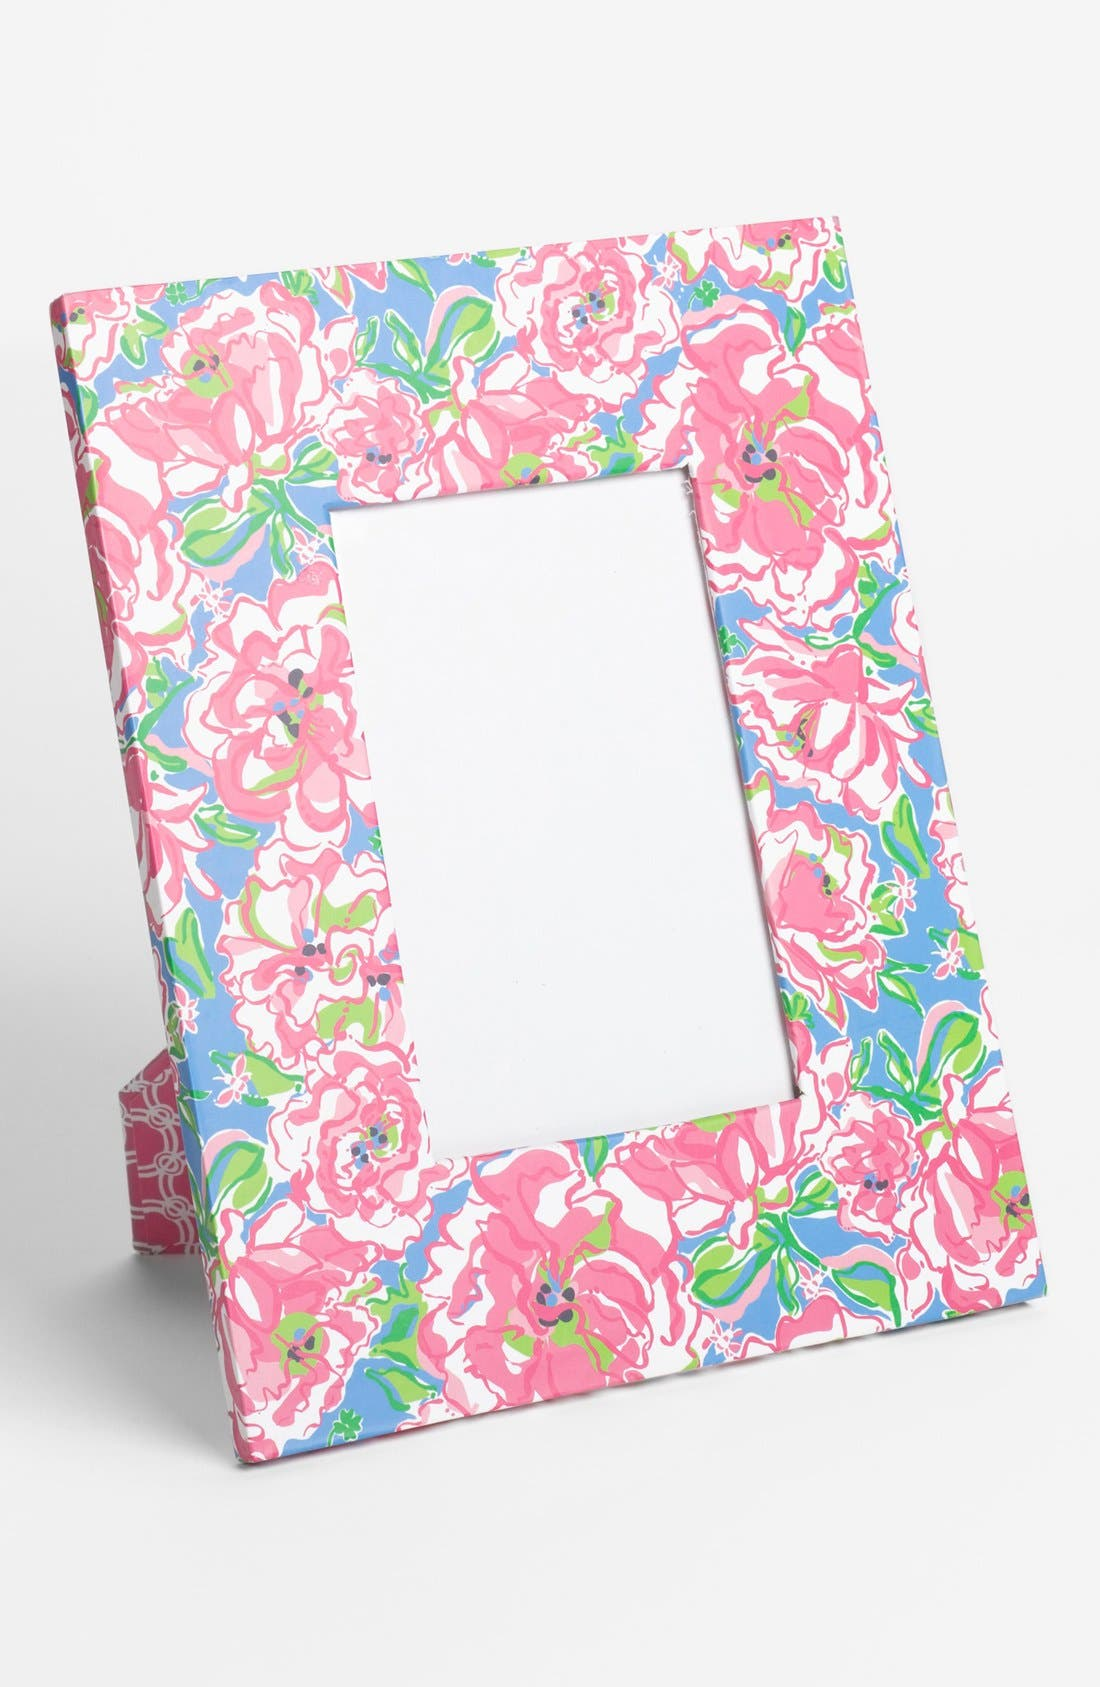 Alternate Image 1 Selected - Lilly Pulitzer® 'Lucky Charms' Picture Frame (4x6)